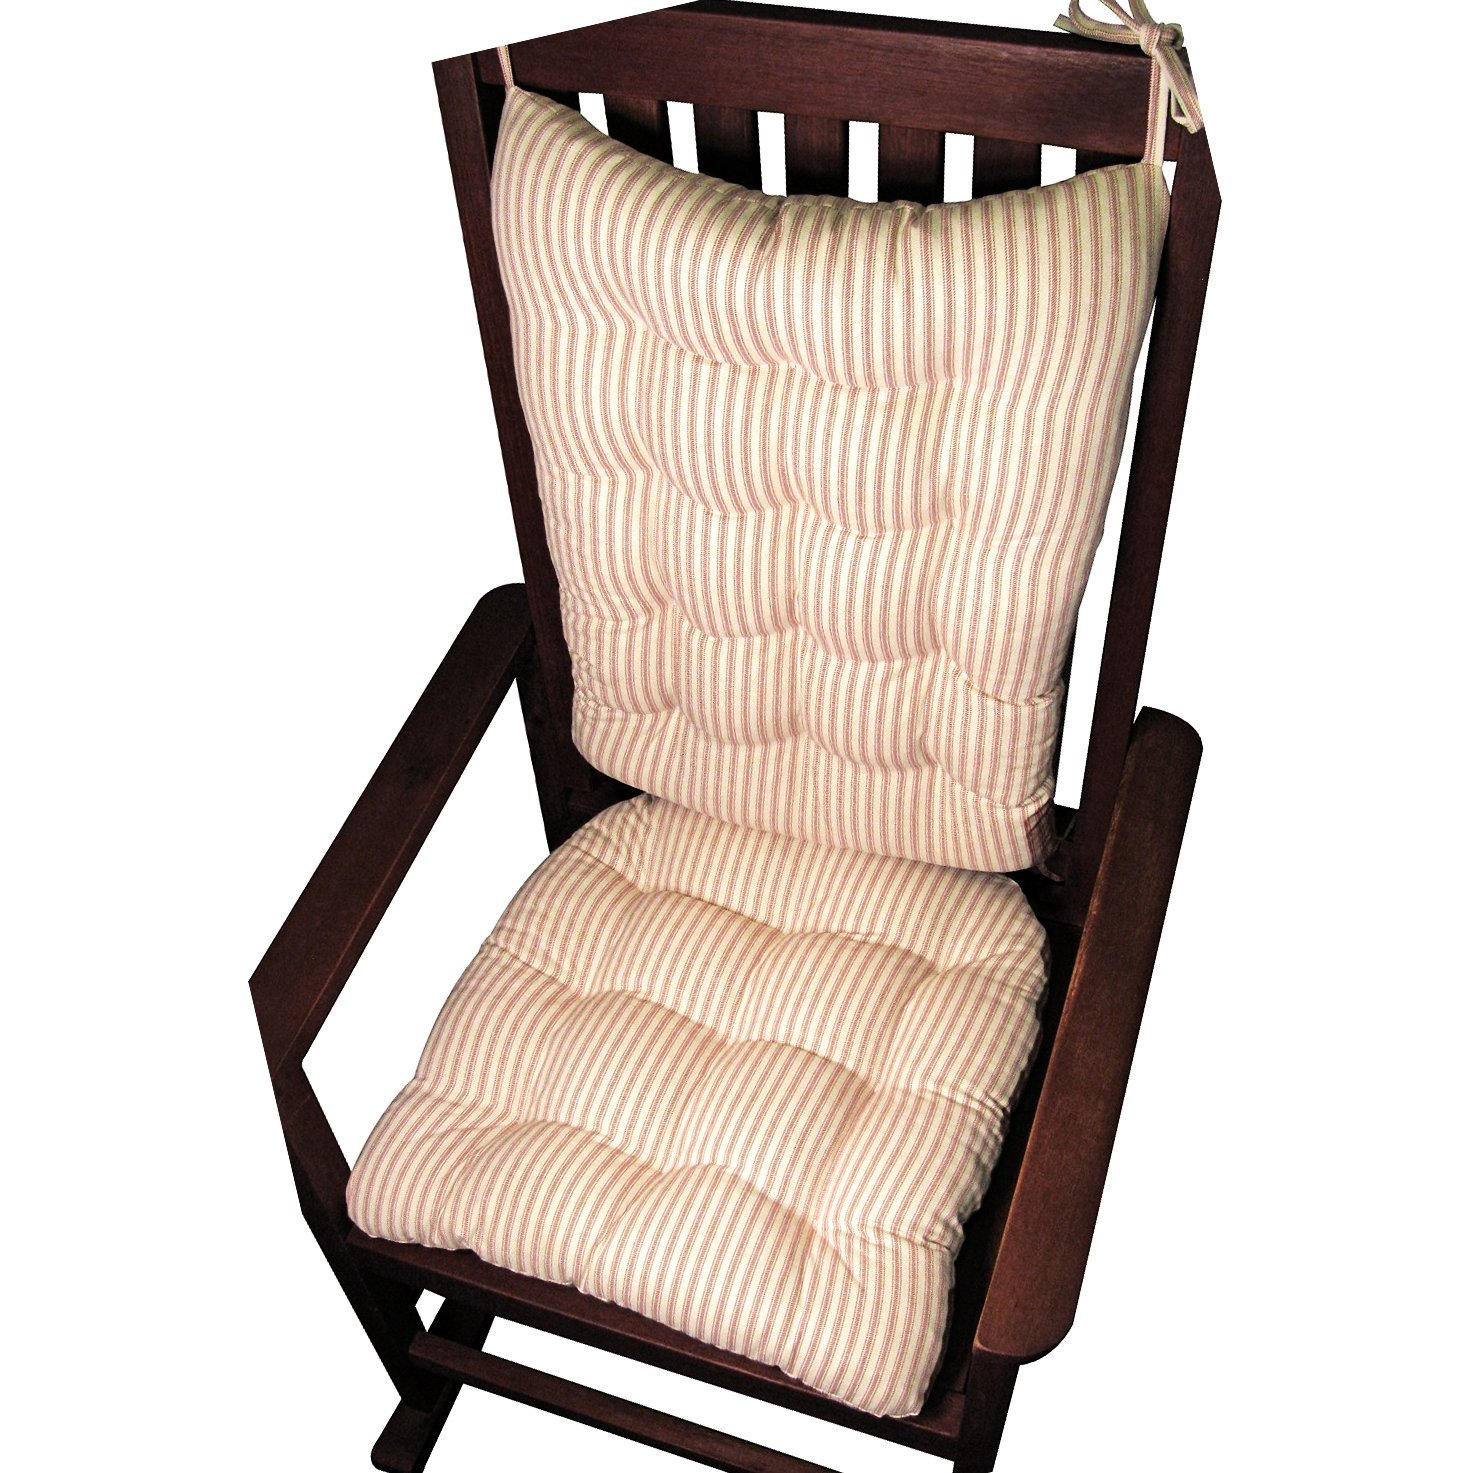 Genial Rocking Chair Cushion Set   Mag Ticking Stripe Red   Extra Large /  Presidential   Seat Cushion With Ties And Back Rest   Reversible, Latex  Foam Fill   Made ...